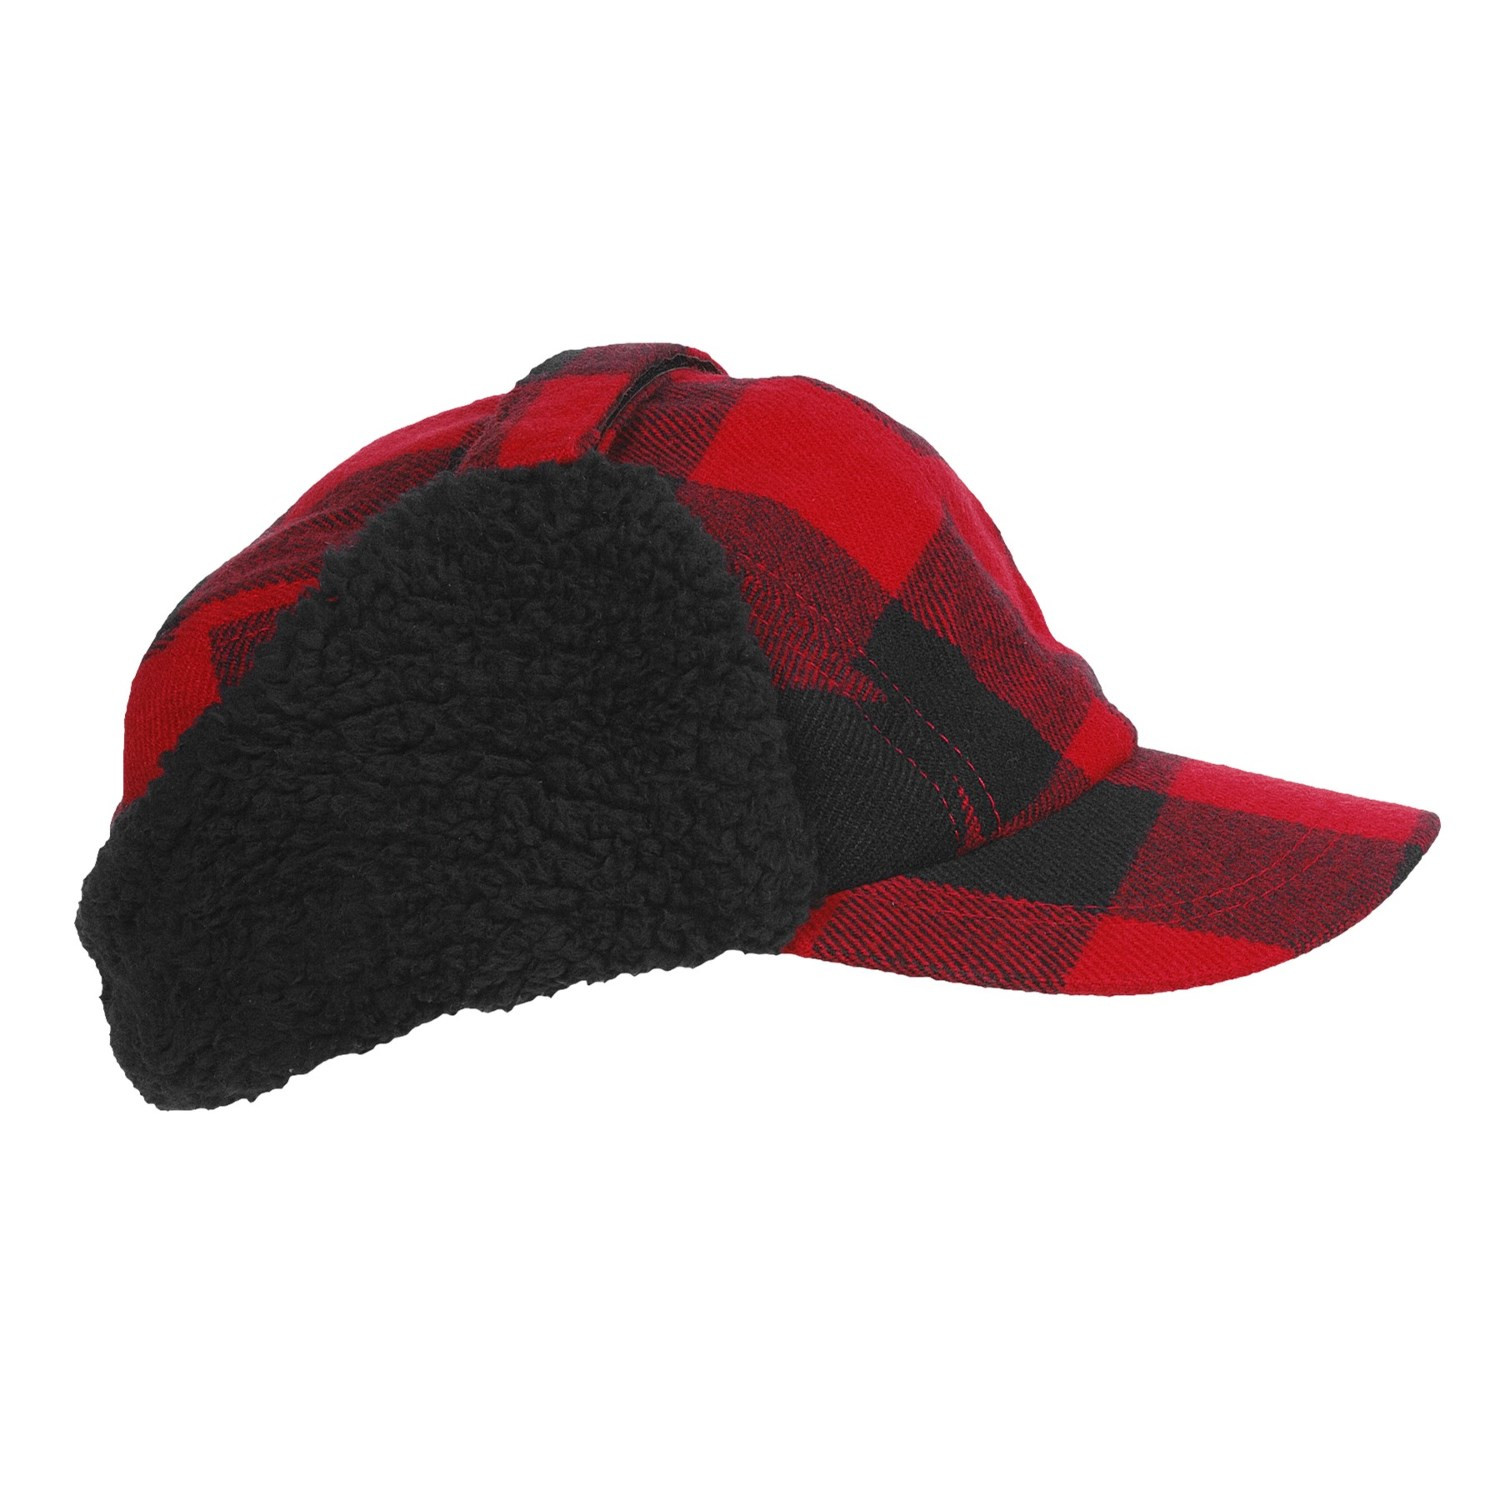 Hat with Ear Flaps Luxury Outdoor Cap Plaid Woodsman Hat for Men 4558r Save Of Top 42 Photos Hat with Ear Flaps